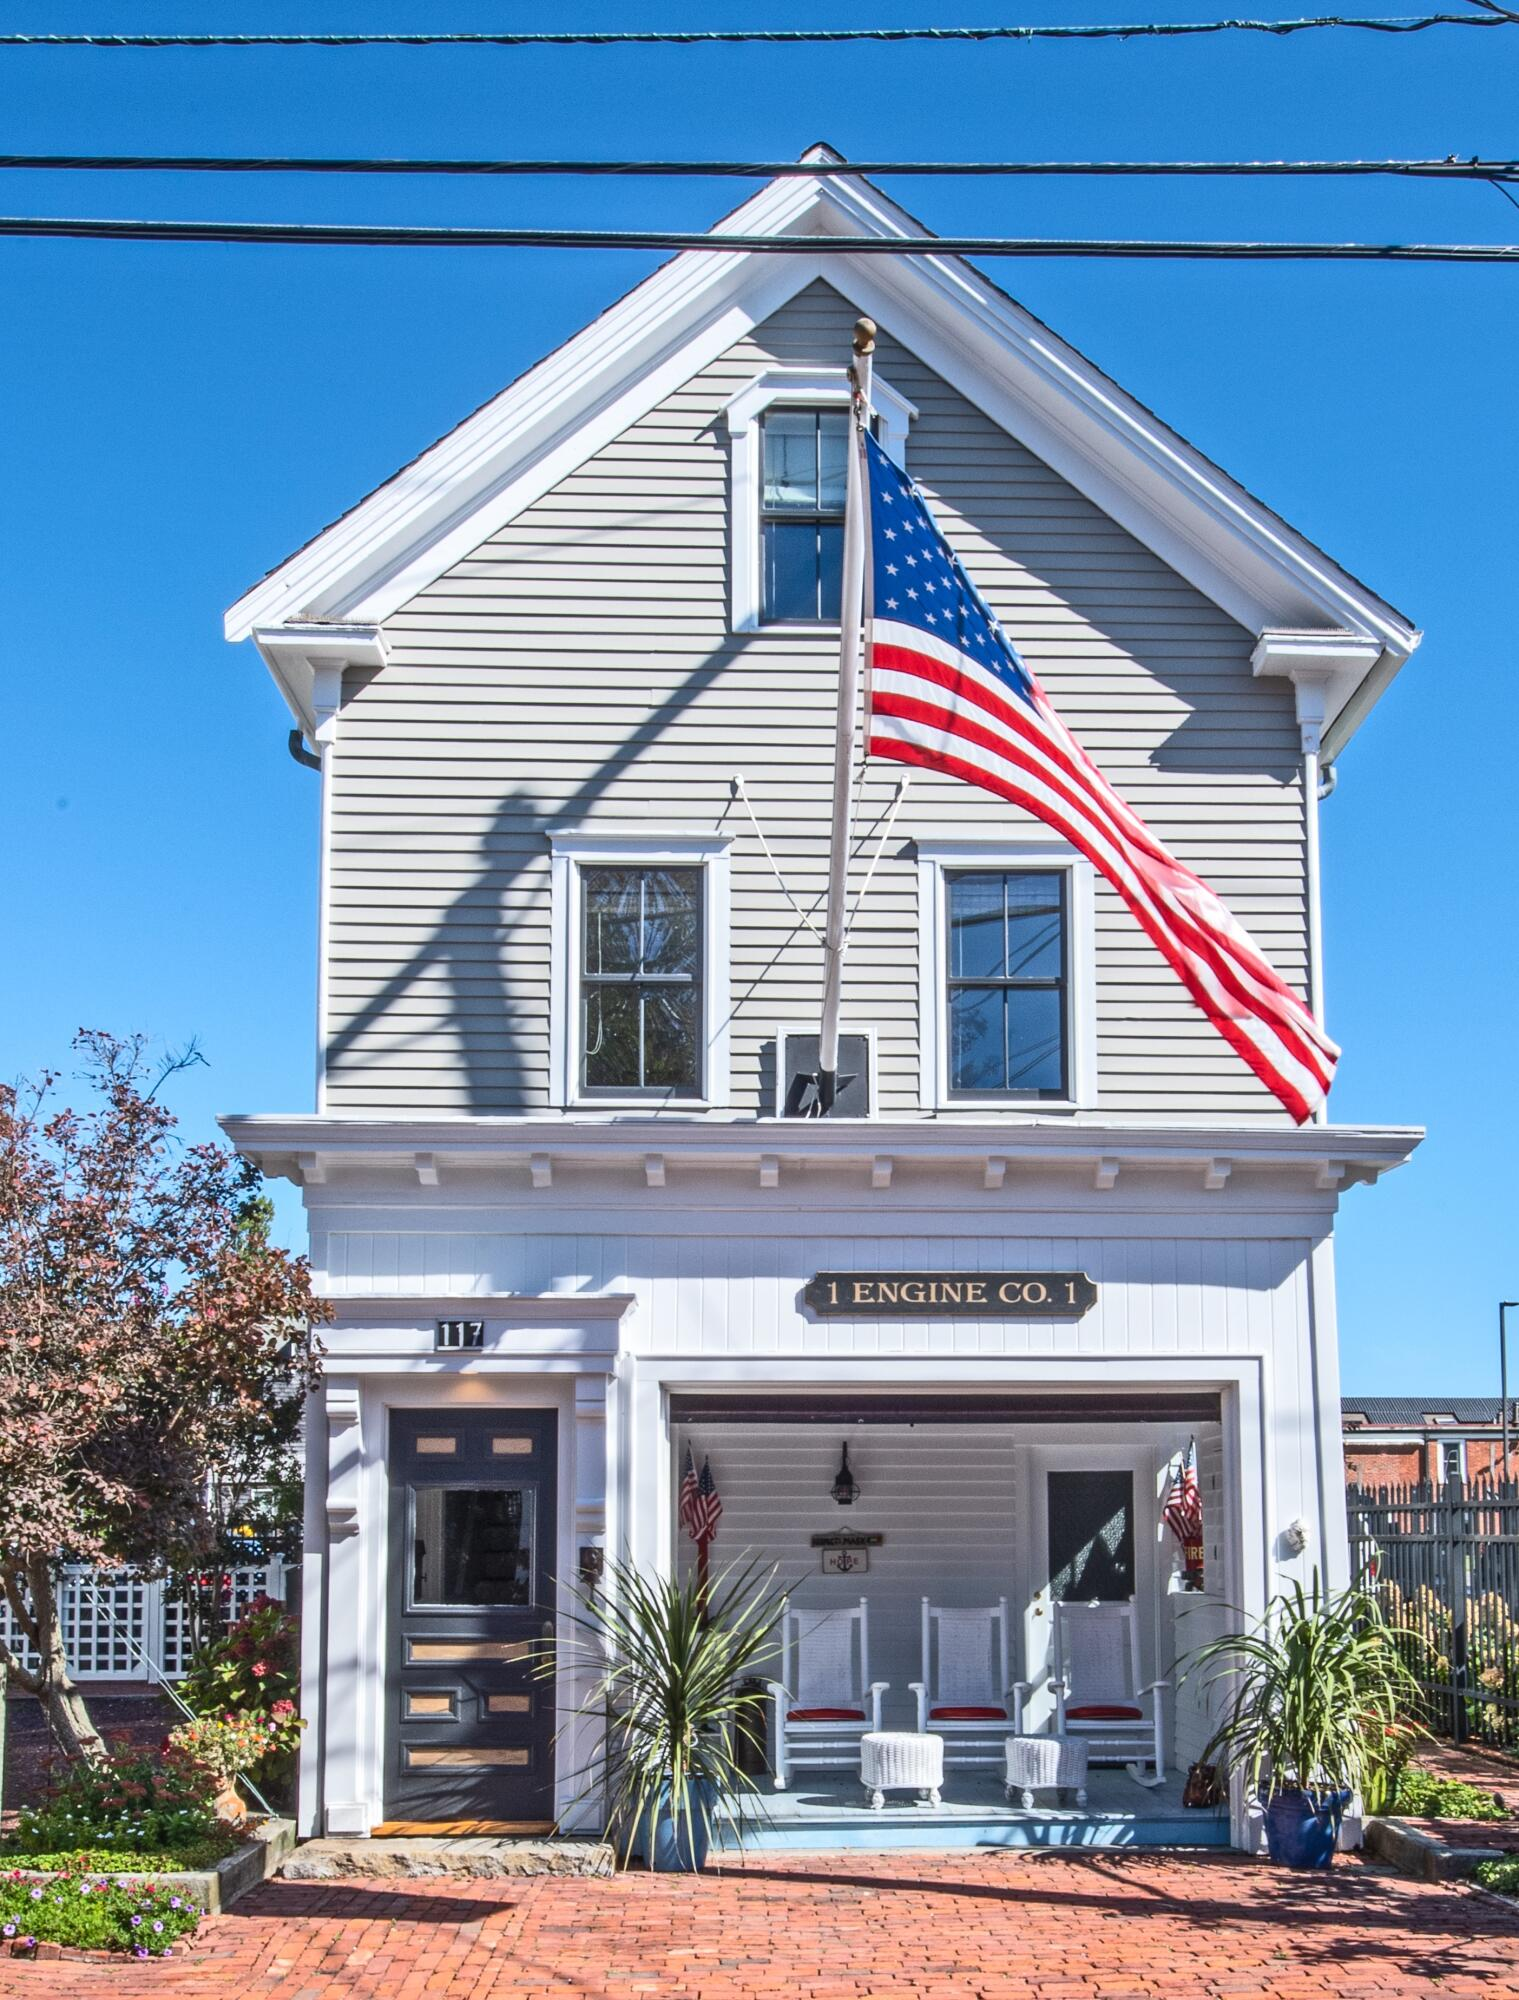 117 Commercial Street, Provincetown MA, 02657 details